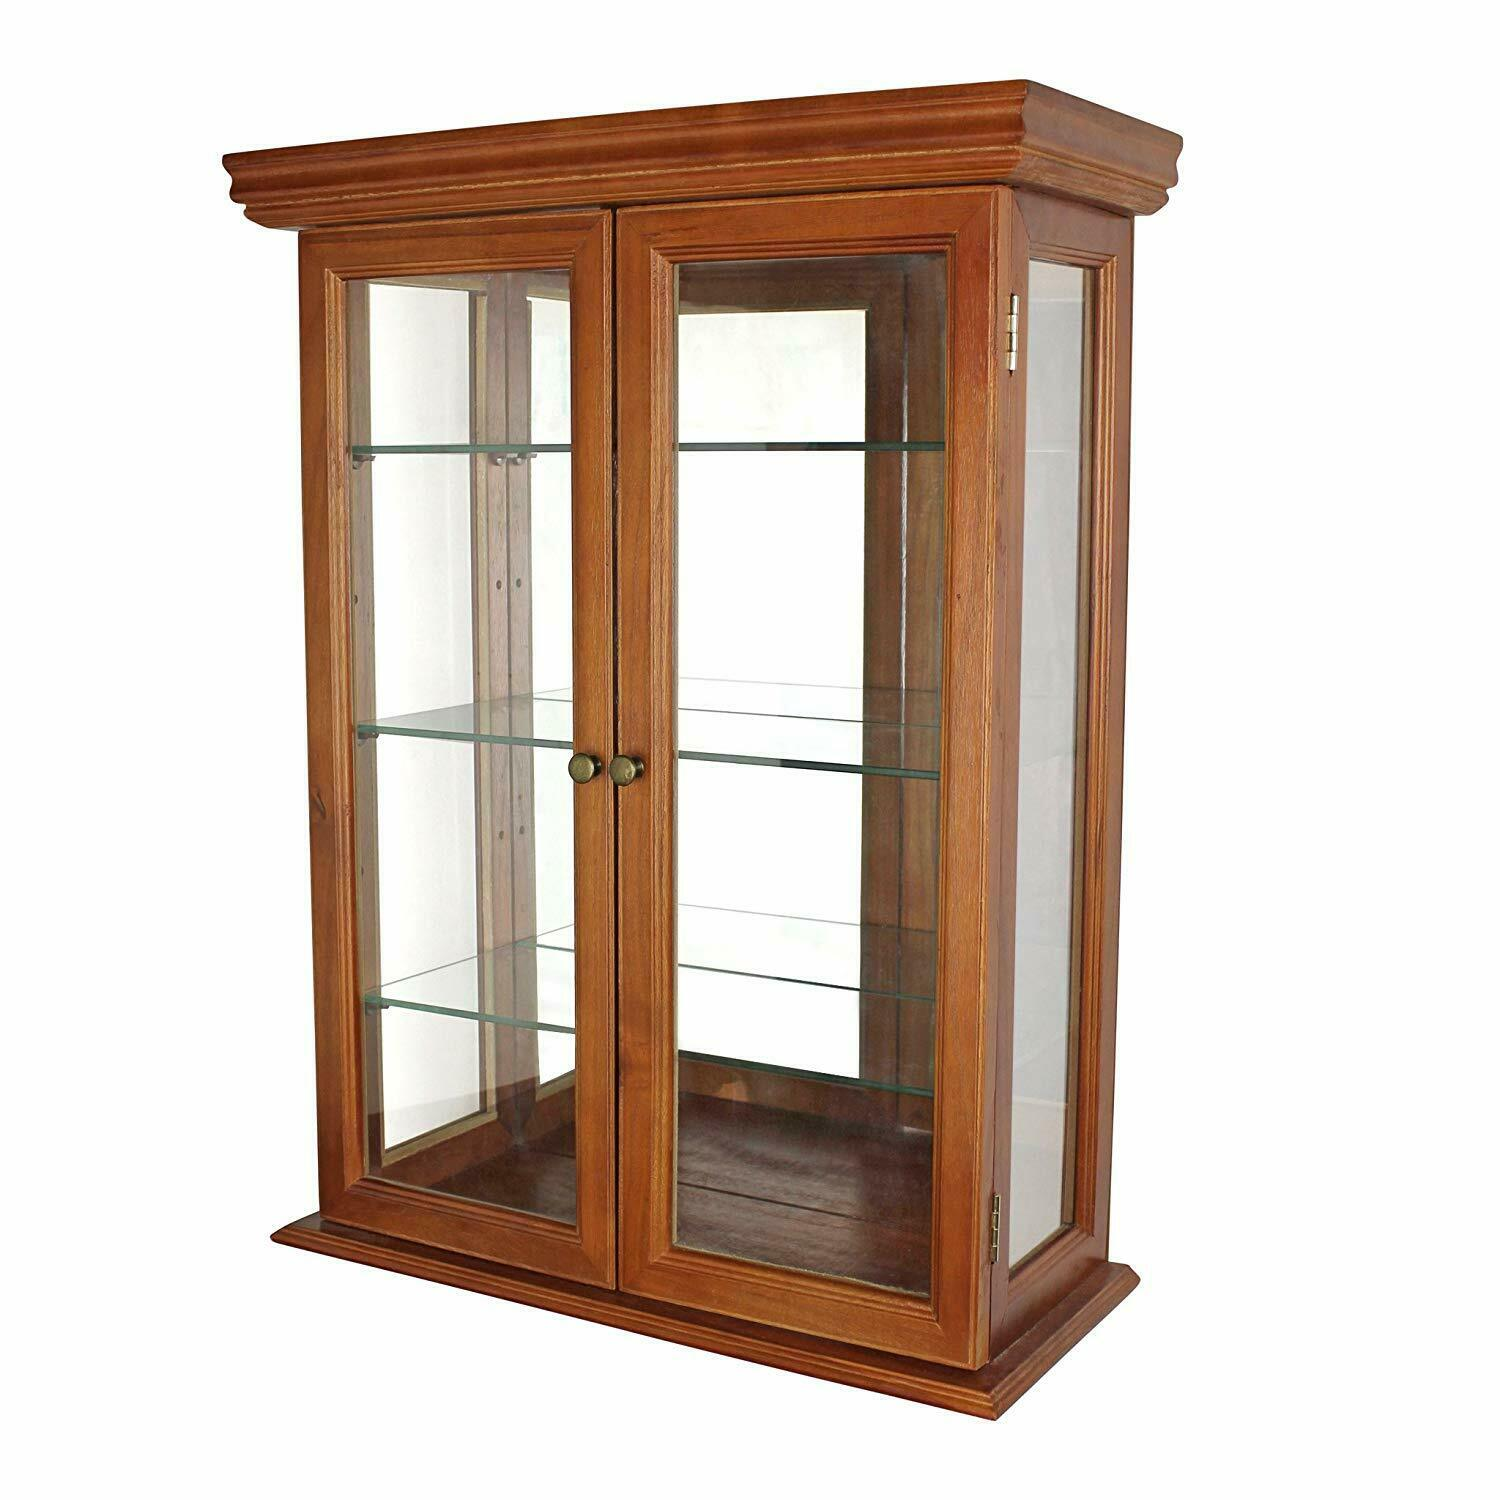 Design Toscano Glass Curio Cabinets Country Tuscan Wall Mounted Cabinet